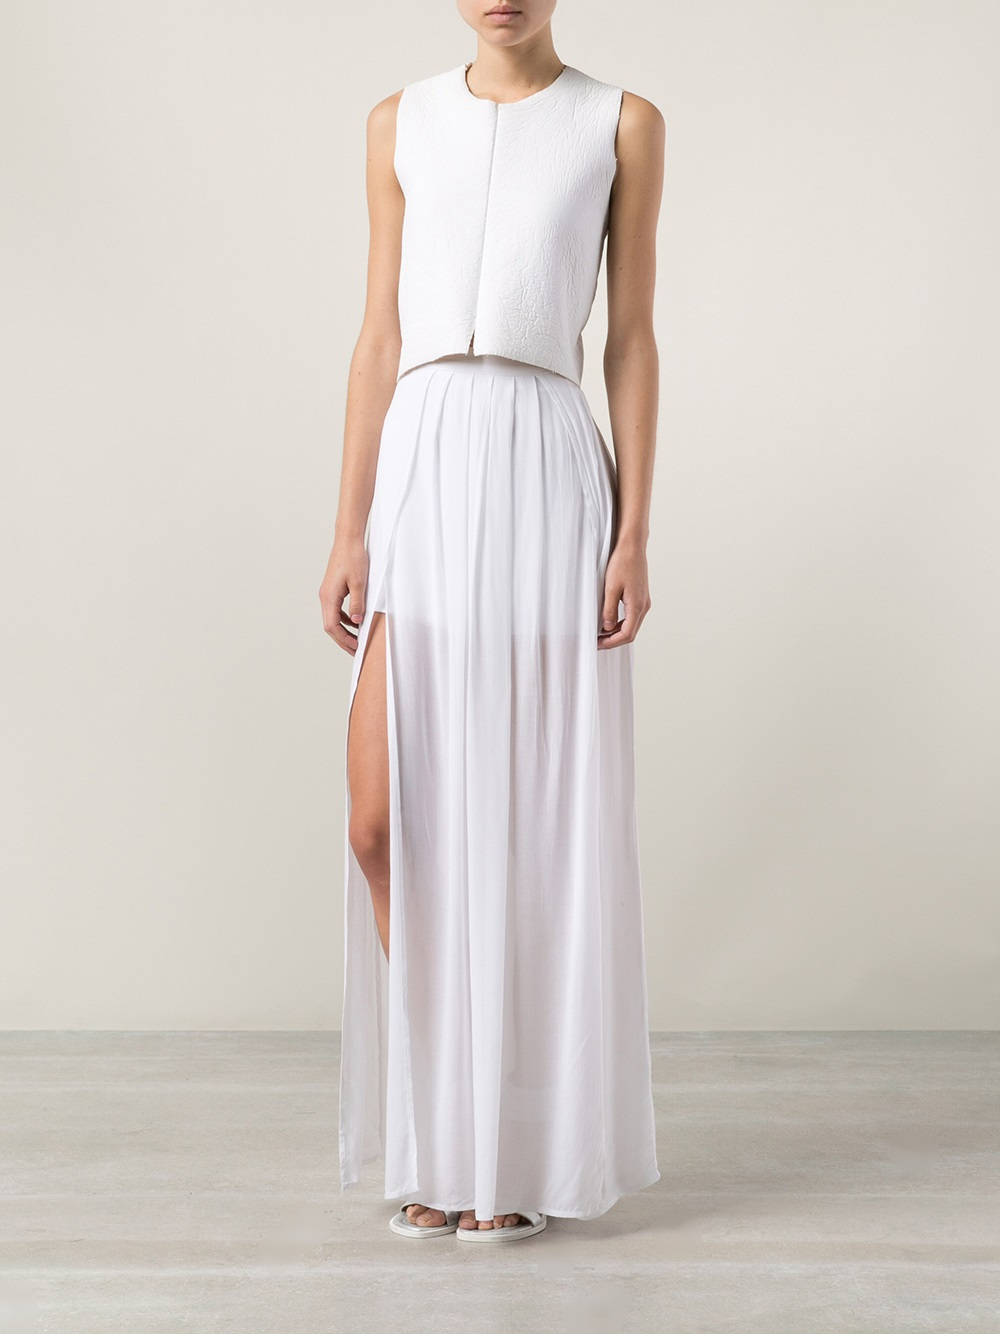 Bella luxx Pleated Maxi Skirt in White | Lyst